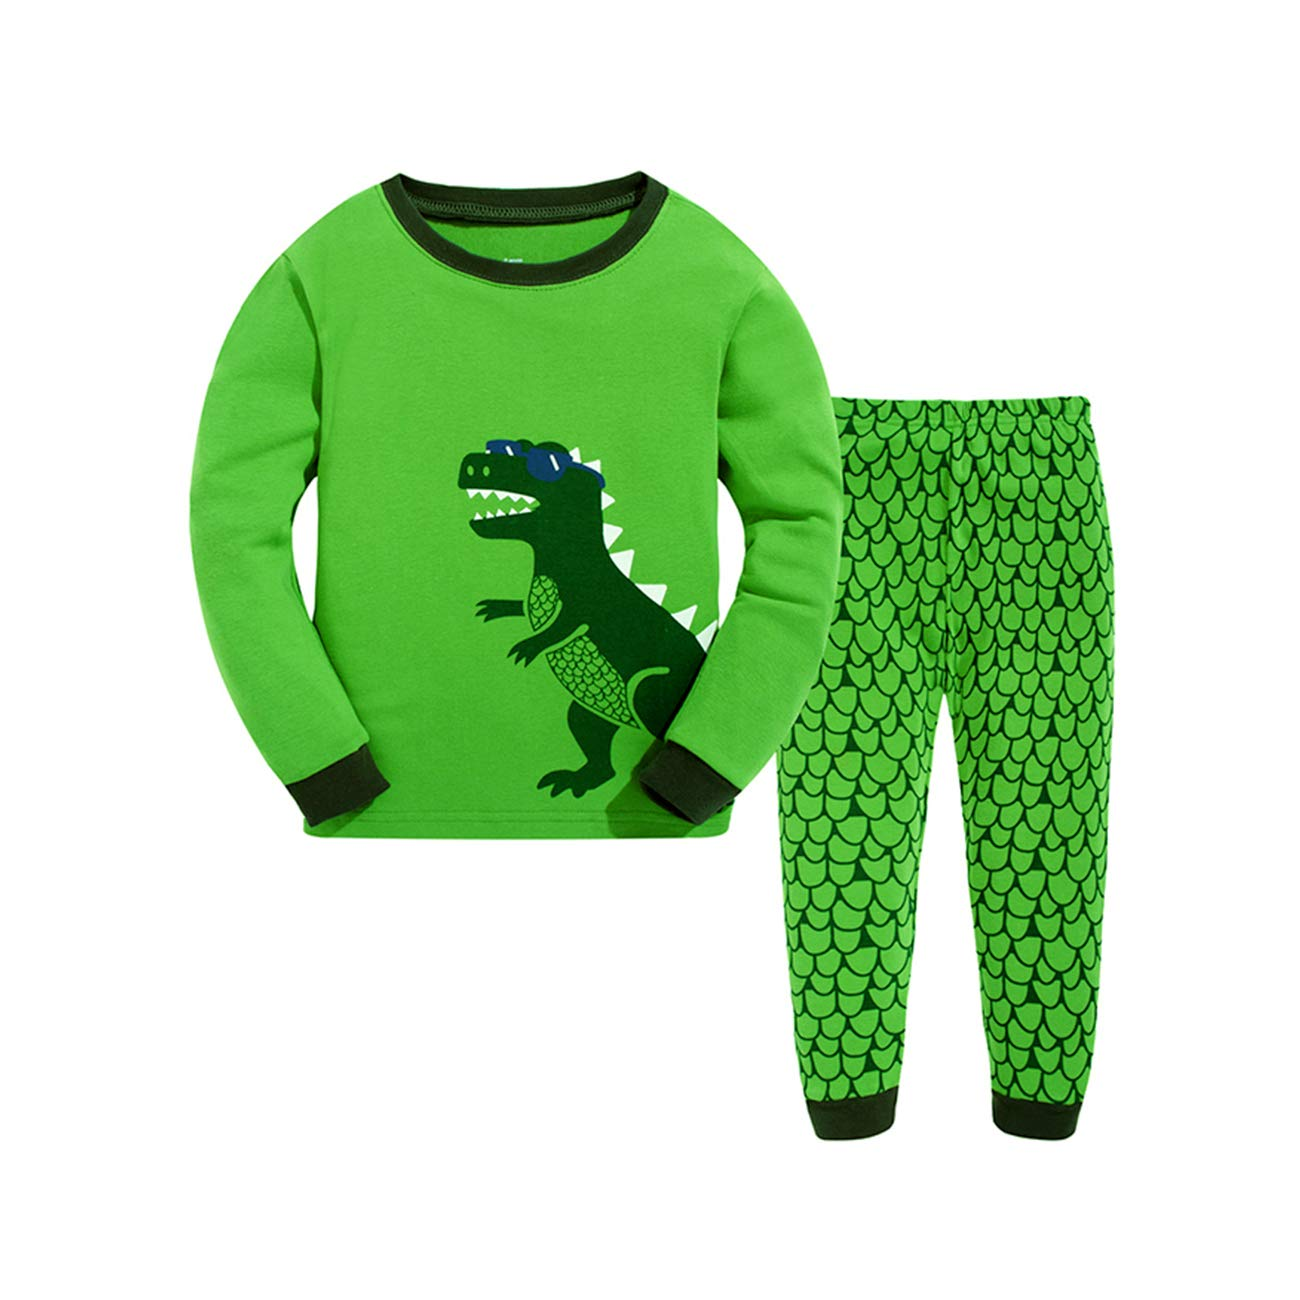 Little Boys Pajamas Dinosaur Thanksgiving Christmas Nightwear Sleepwear Long Sleeve Pjs Set for Kids Toddler 1-2 Years 2T